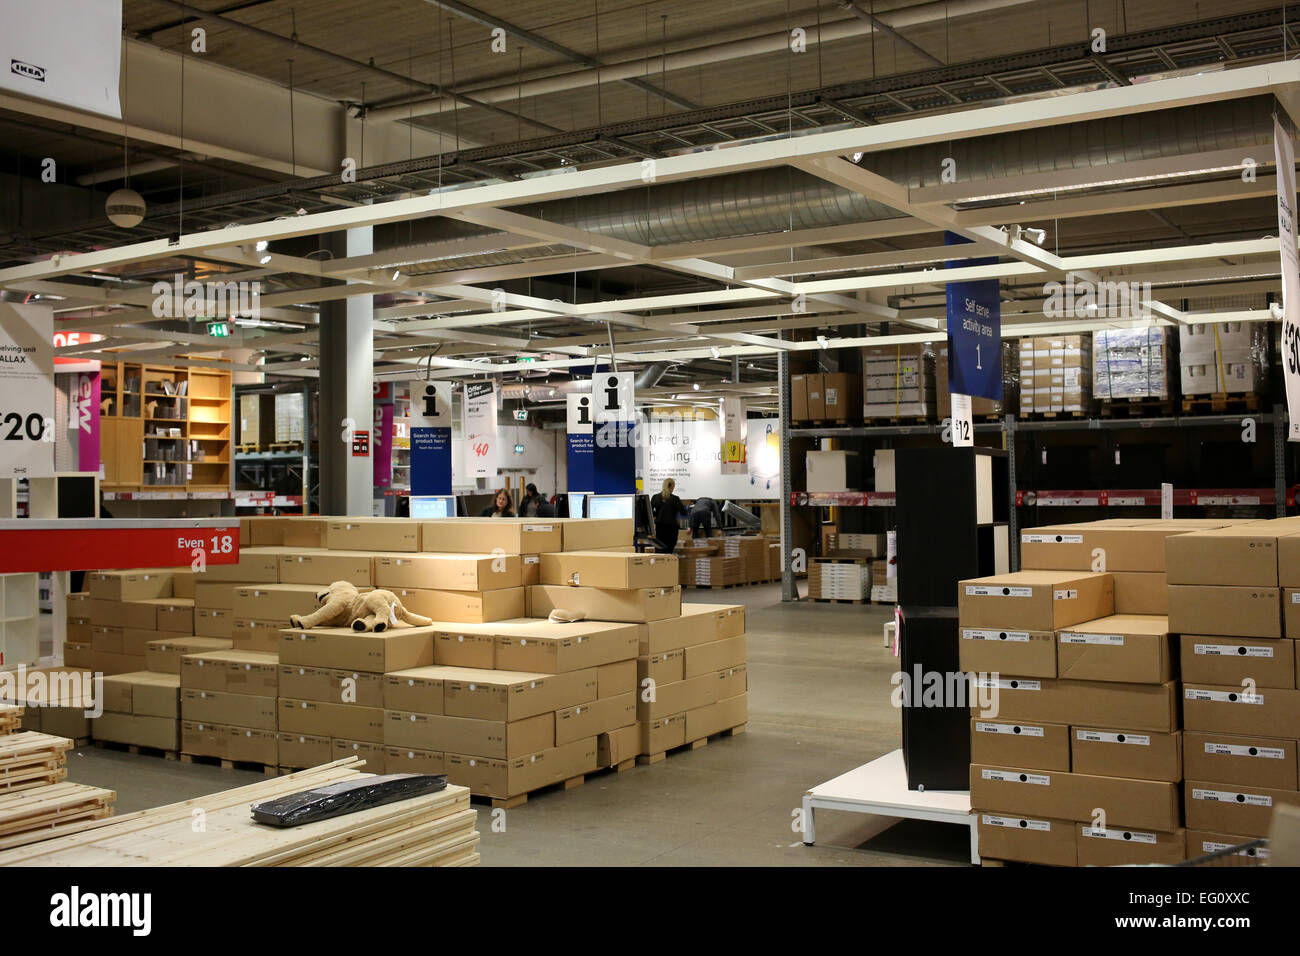 Charmant Self Service Activity Area At IKEA Store In Lakeside, Thurrock Essex  England Uk